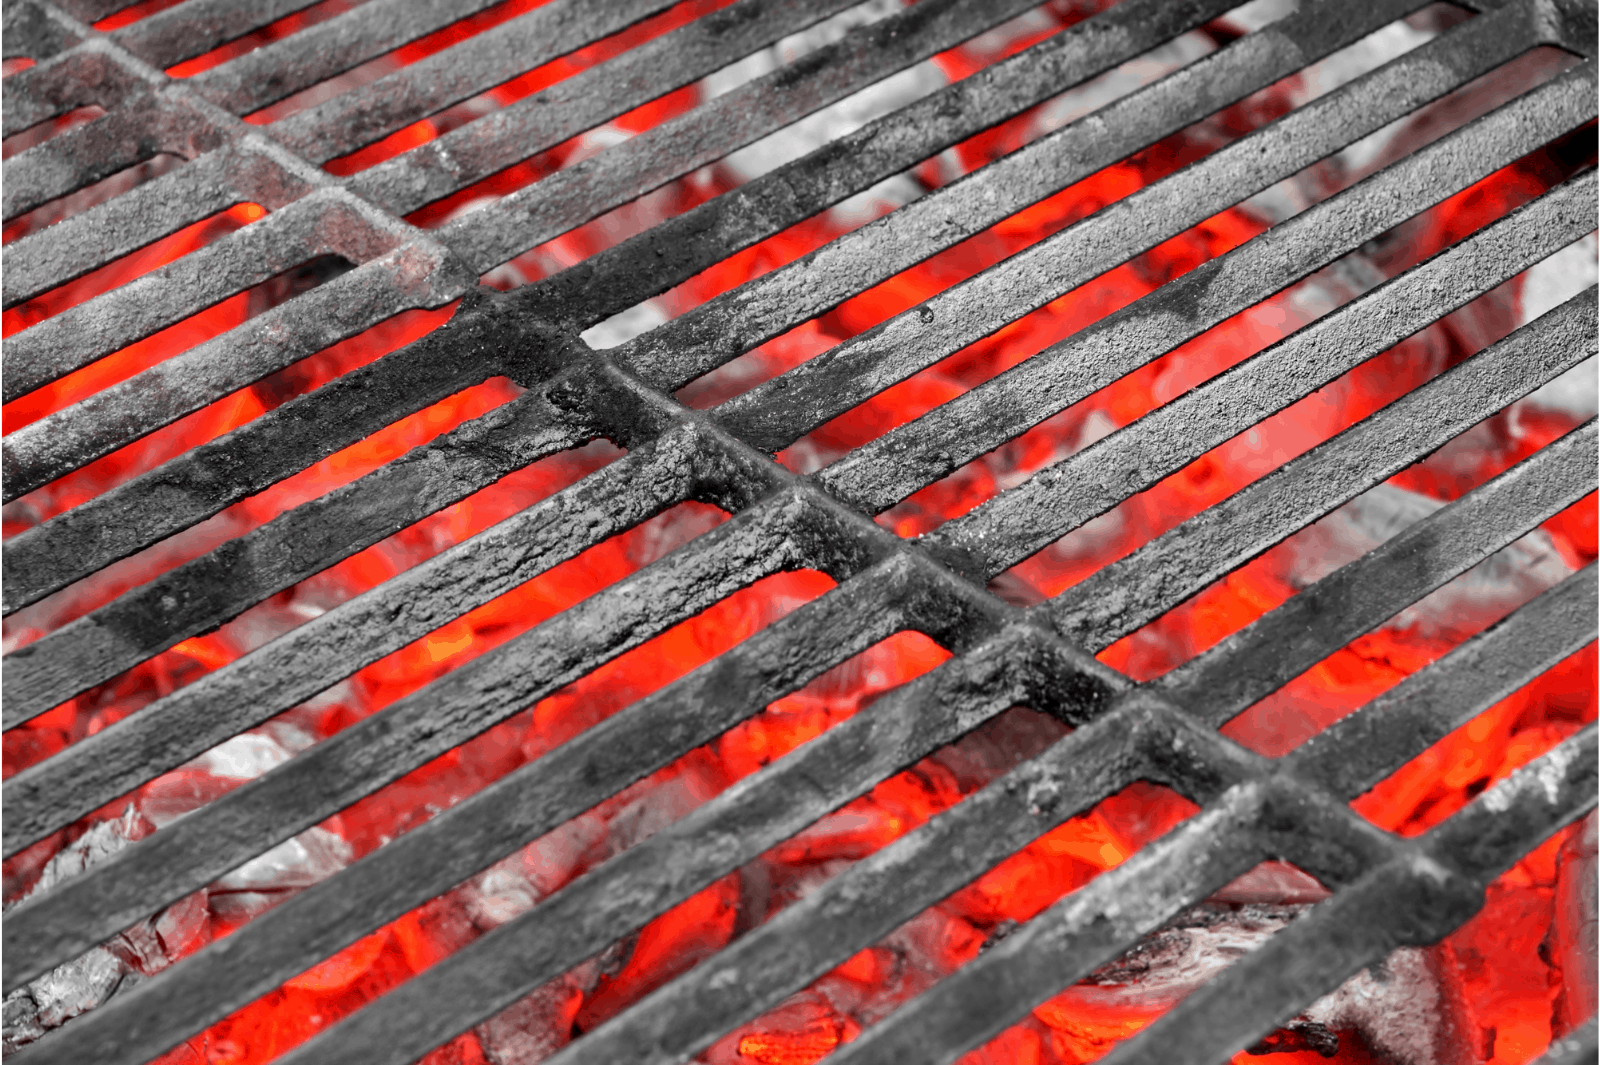 Stainless Steel Grill Grates vs Cast Iron